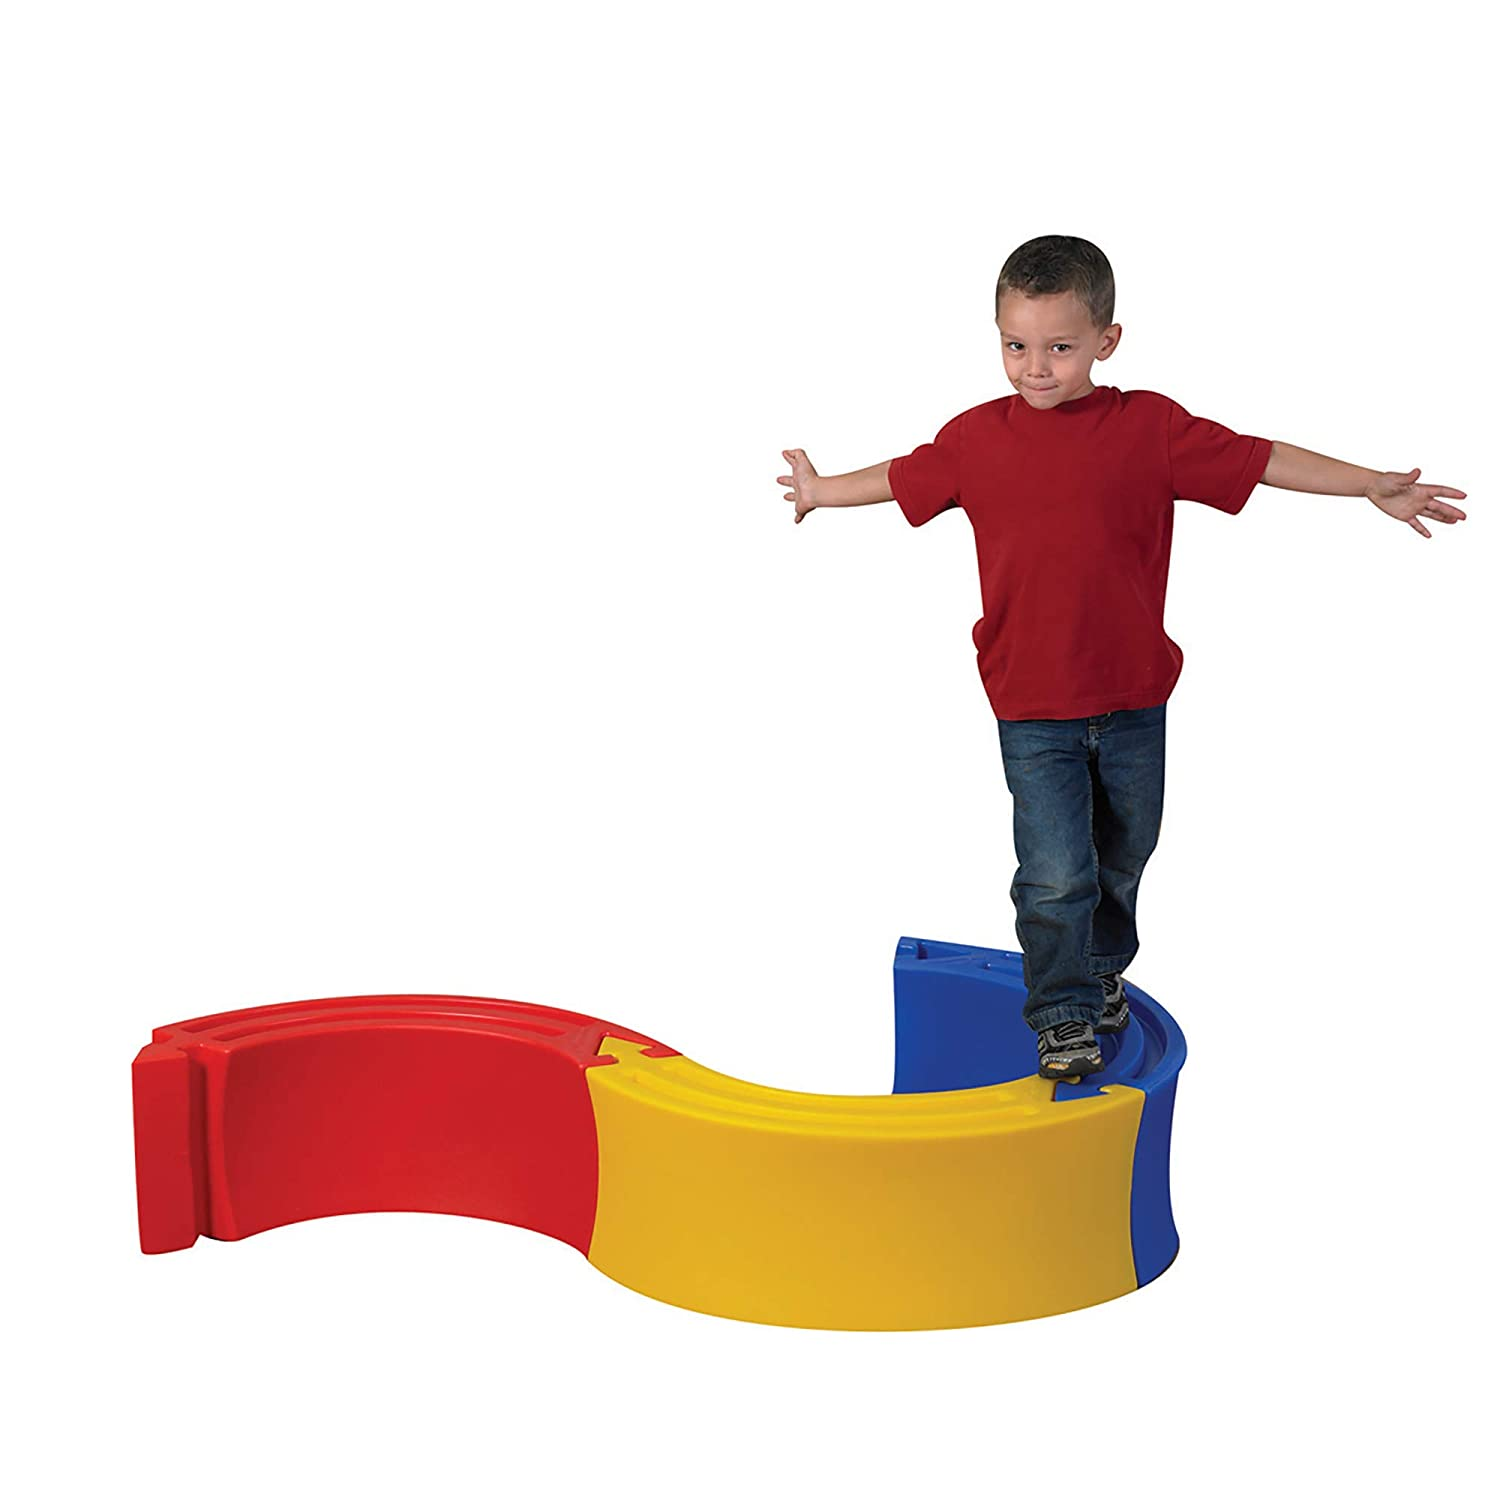 Children's Factory Edu-Ring Indoor Limited Special Price Equipment Play outlet Outdoor Bala